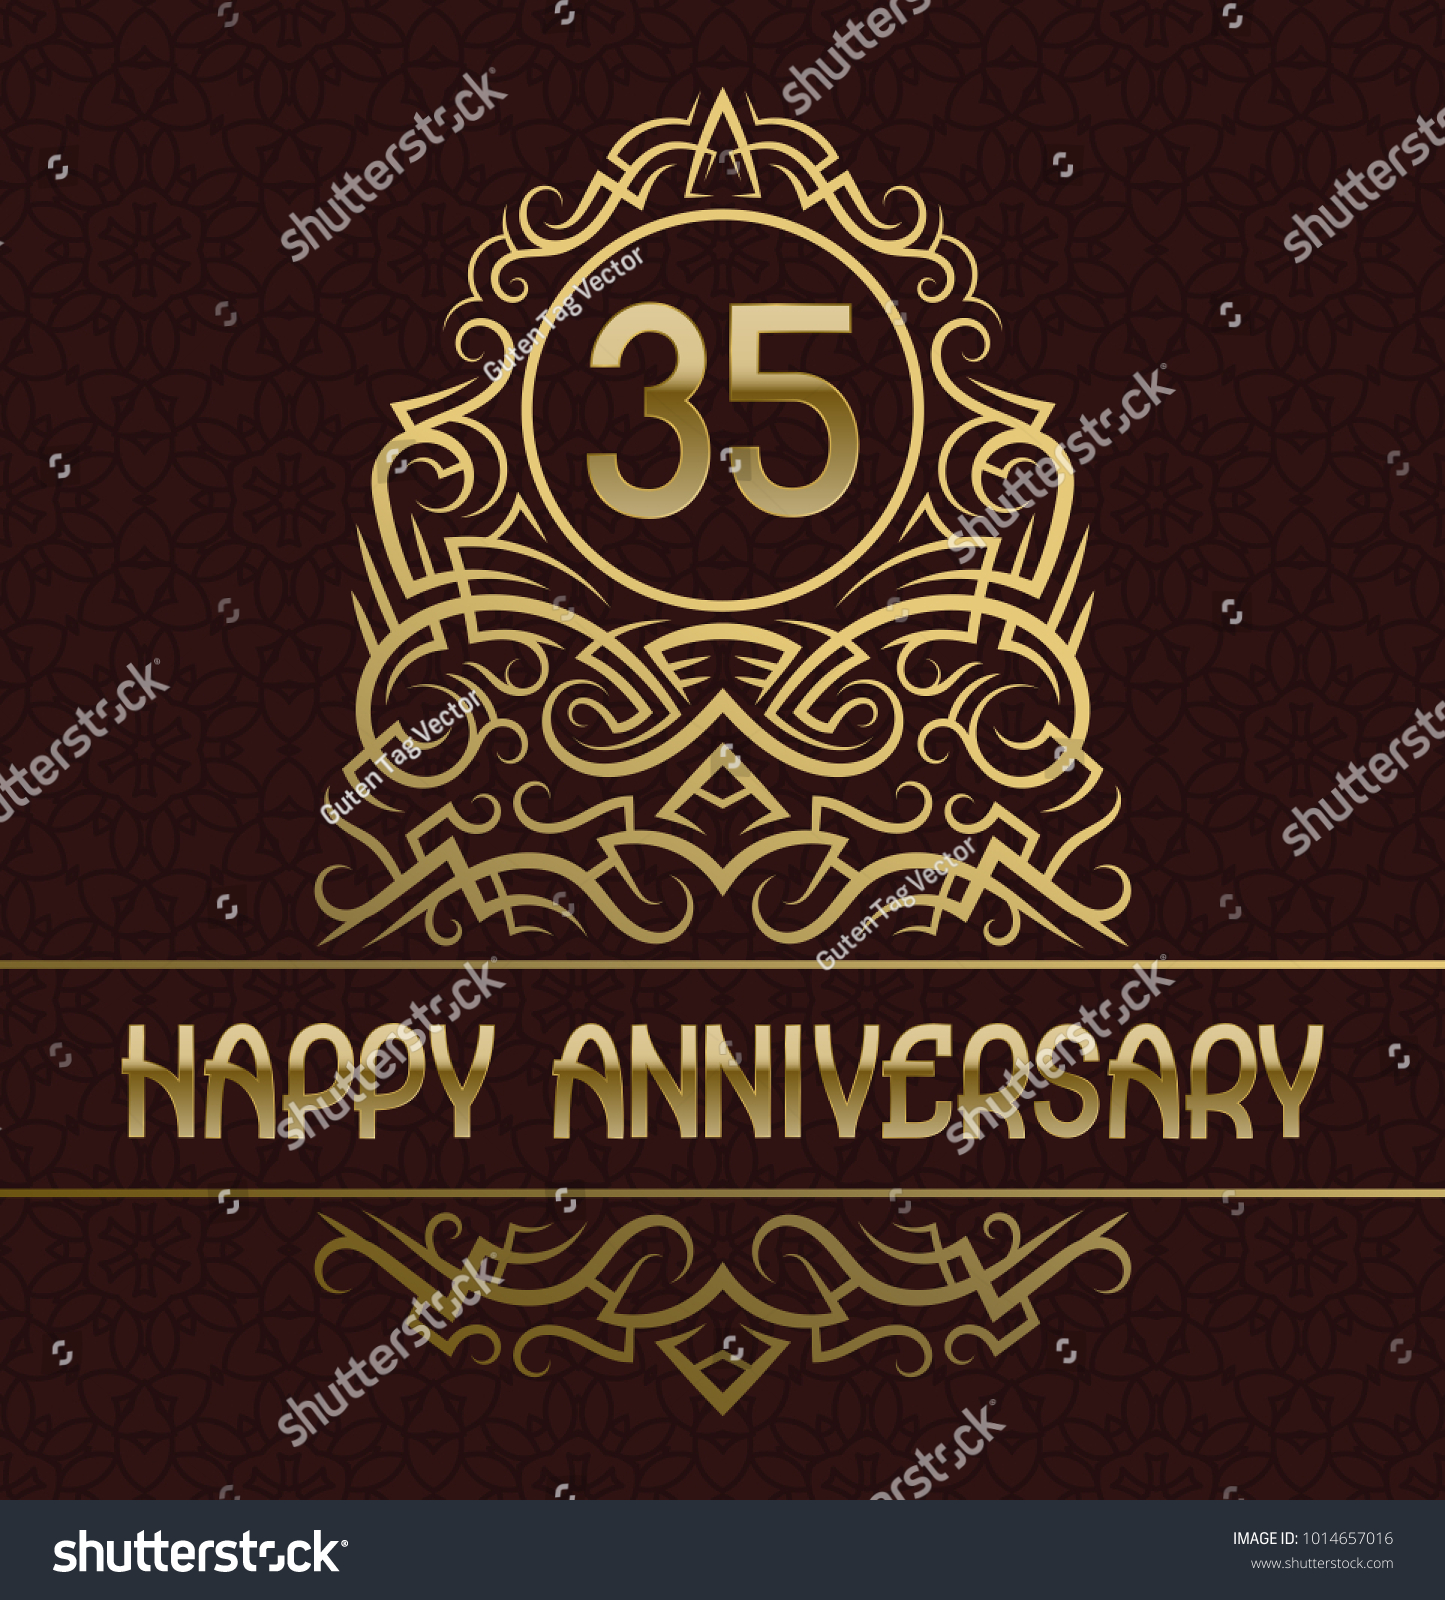 Happy anniversary greeting card template thirty stock vector happy anniversary greeting card template for thirty five years celebration vintage design with golden elements kristyandbryce Choice Image